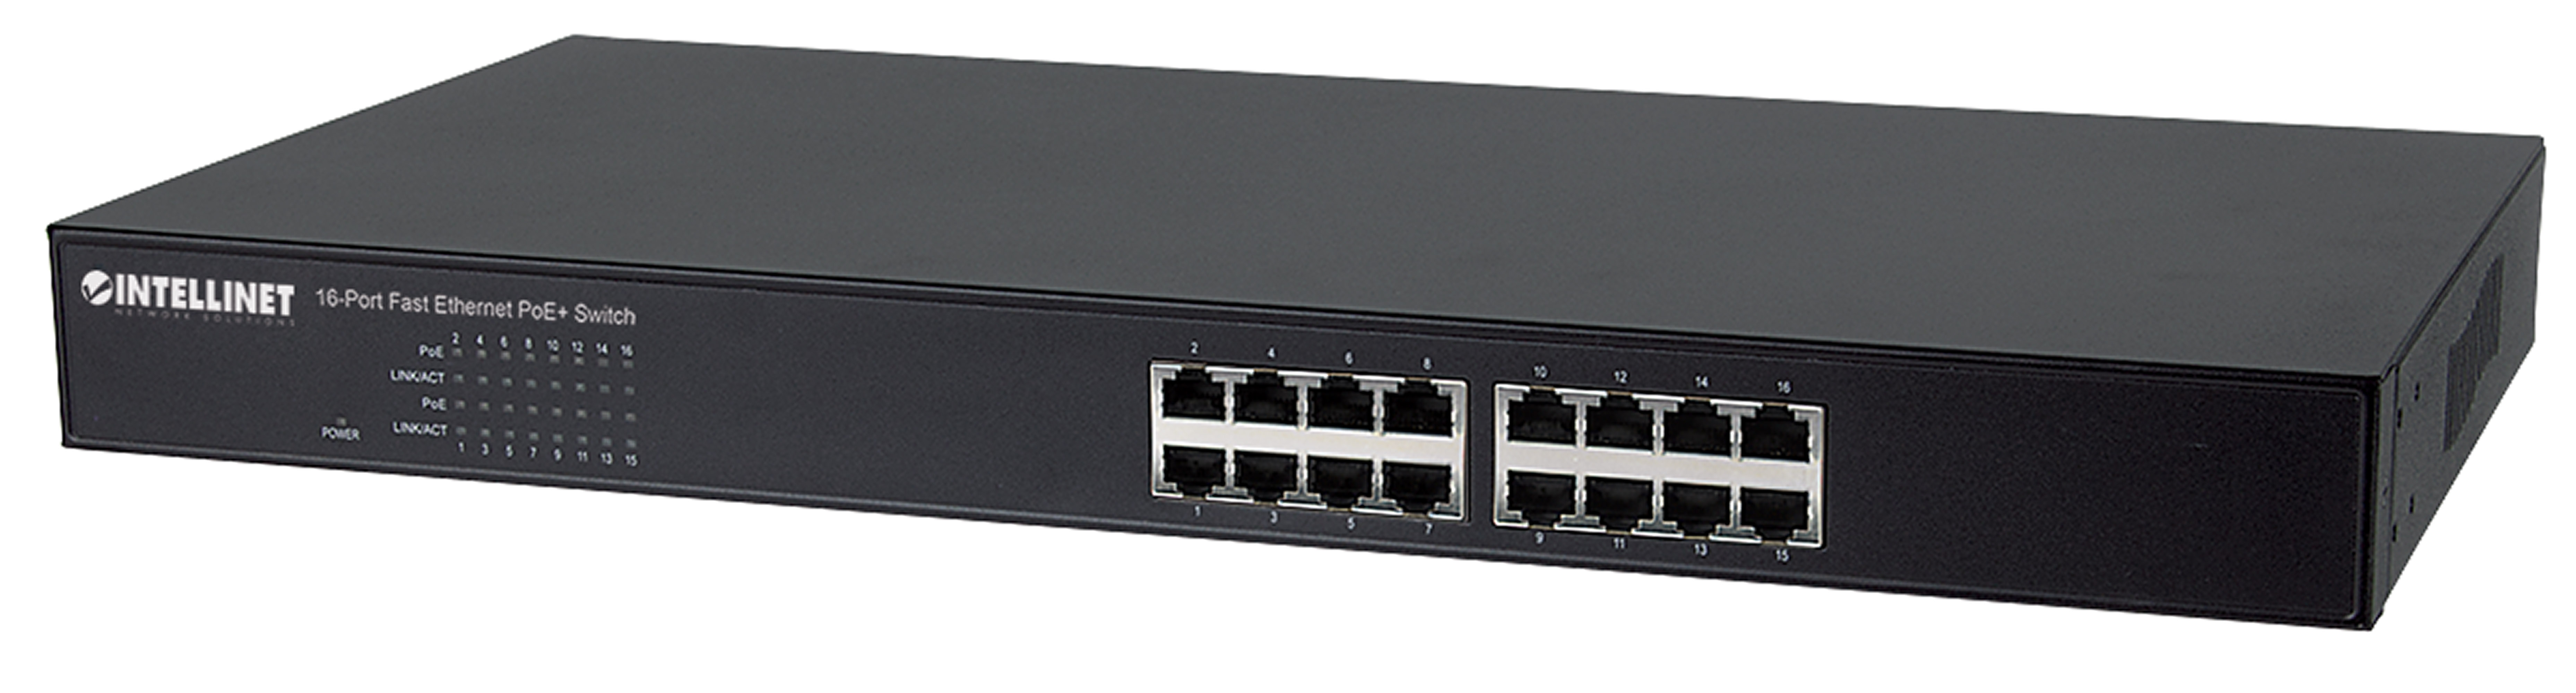 16-Port Fast Ethernet PoE+ Switch